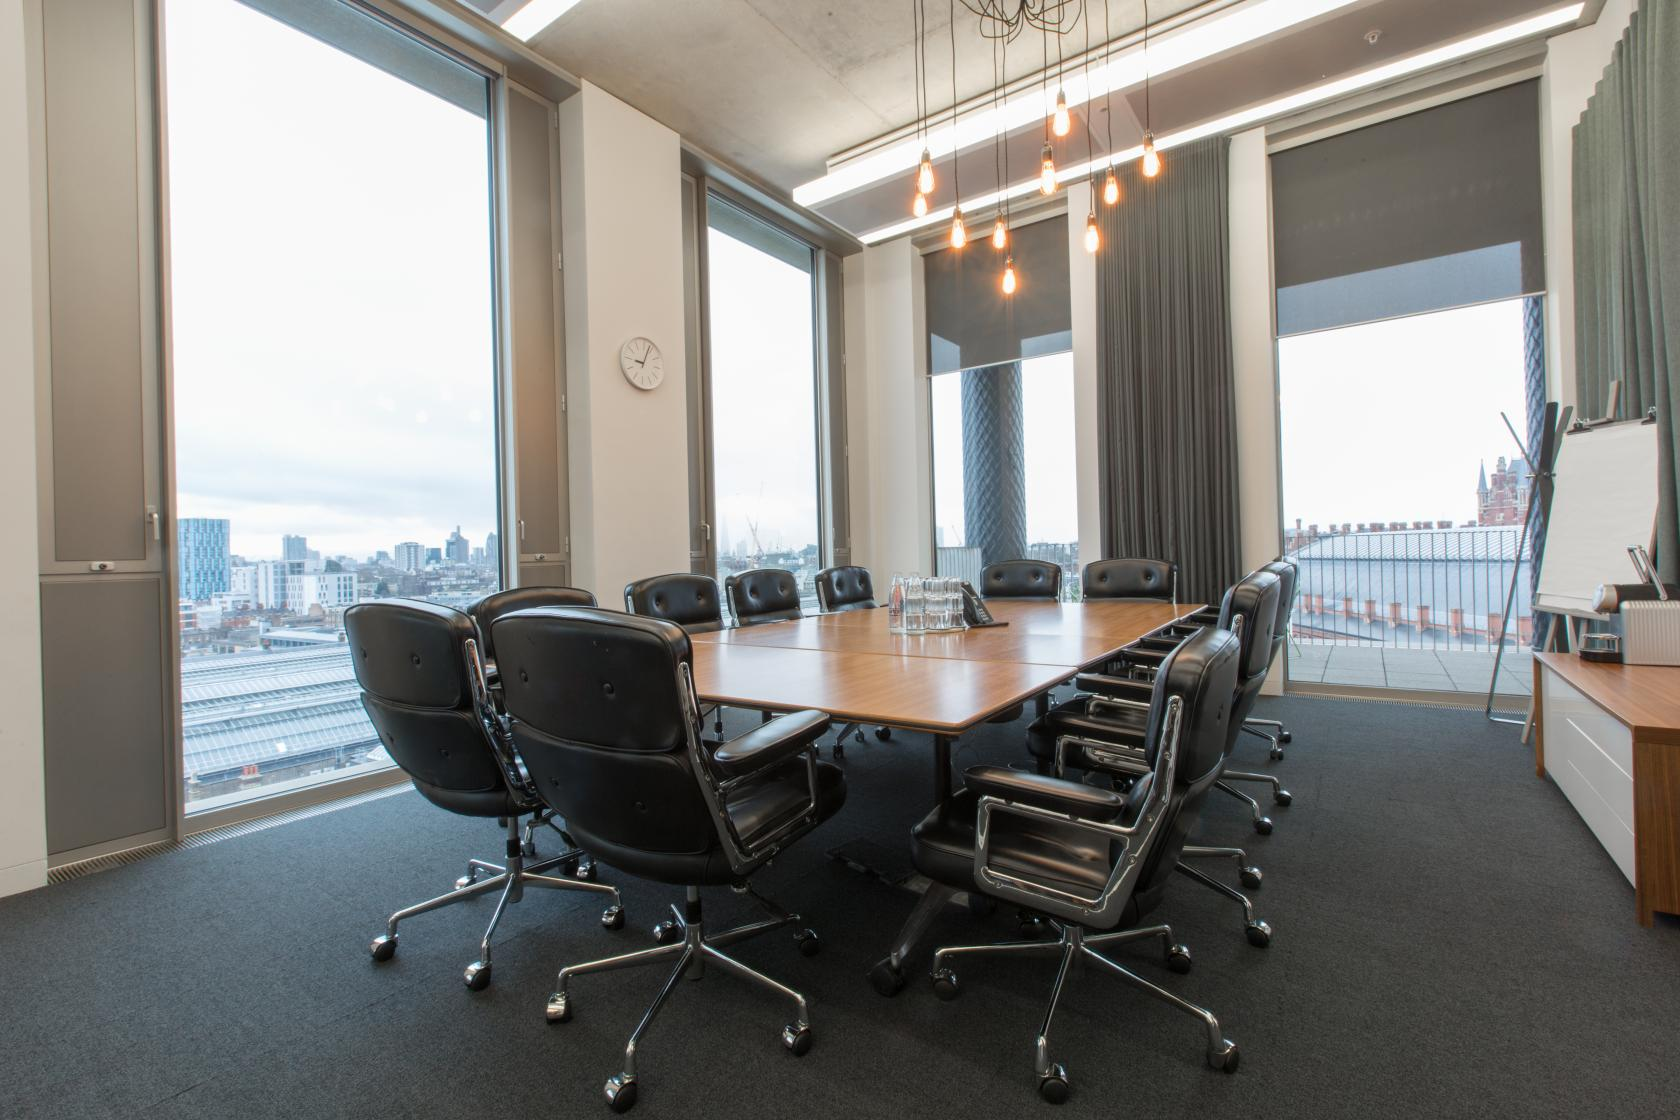 Gridiron offers a selection of meeting rooms boasting amazing views of the city of London